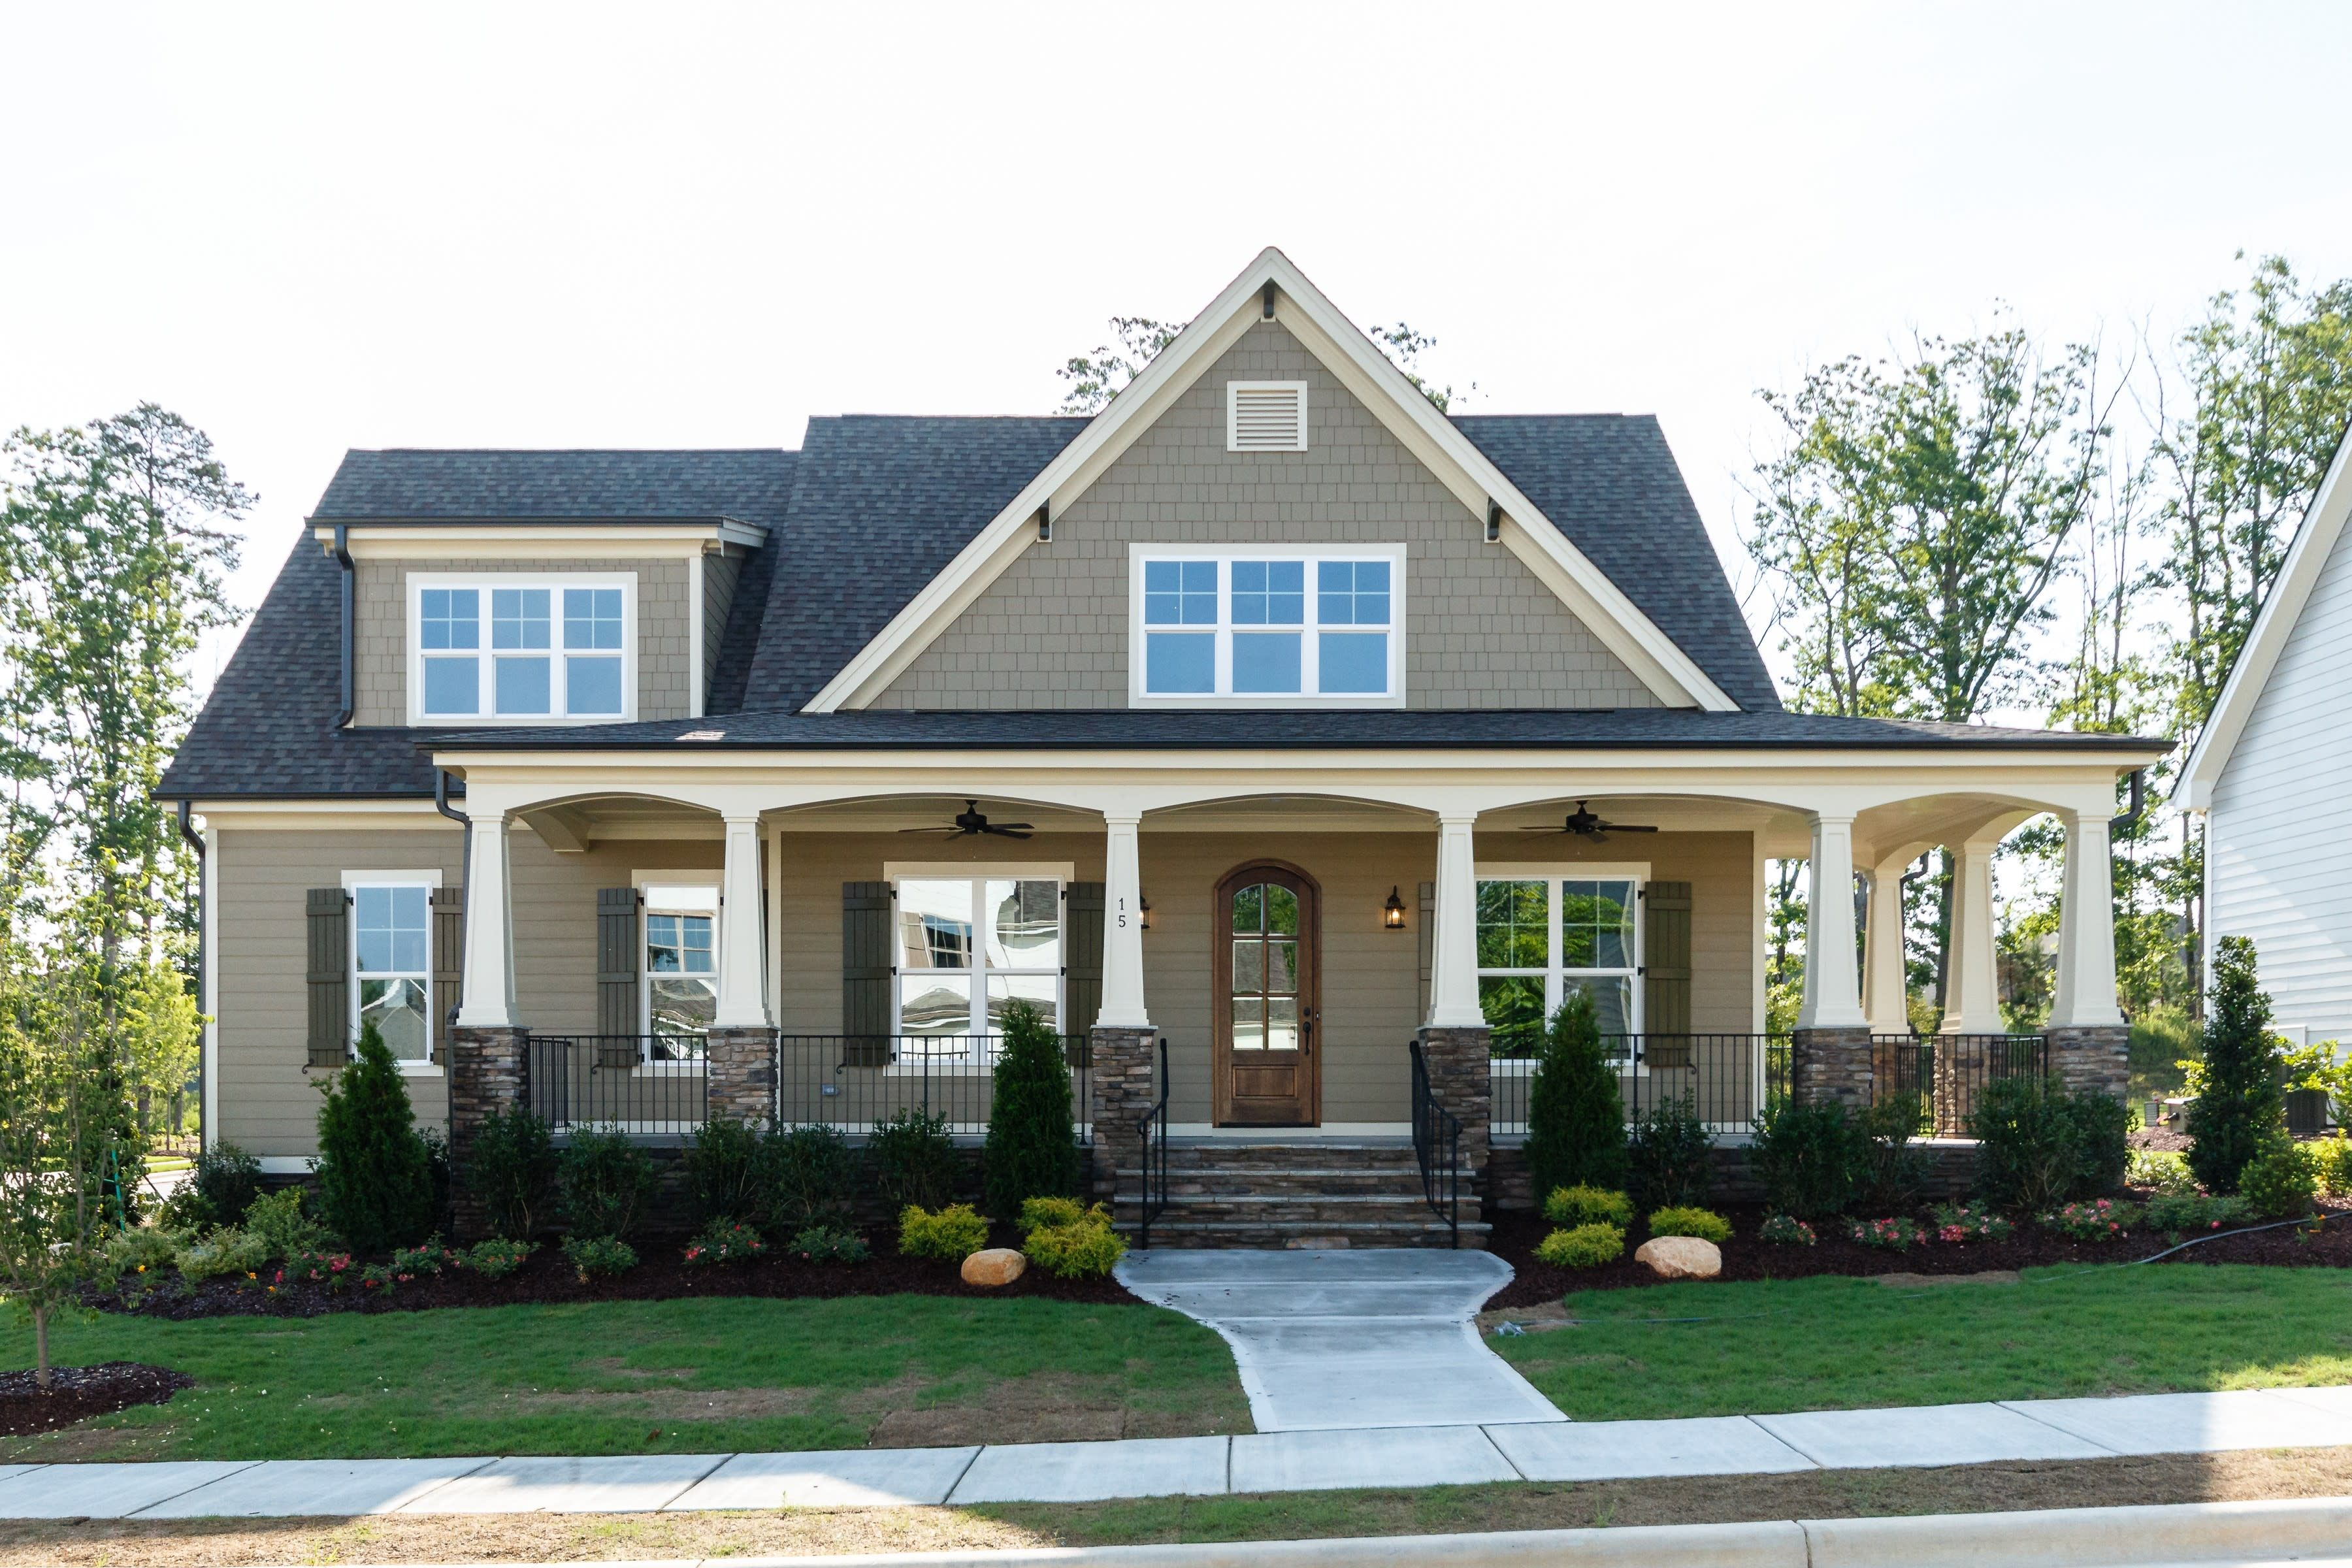 Raleigh Custom Builders | Homes by erson | House Color ... on shelby homes floor plans, regent homes floor plans, huff homes floor plans, warehouse homes floor plans, wausau homes floor plans, quadrant homes floor plans,